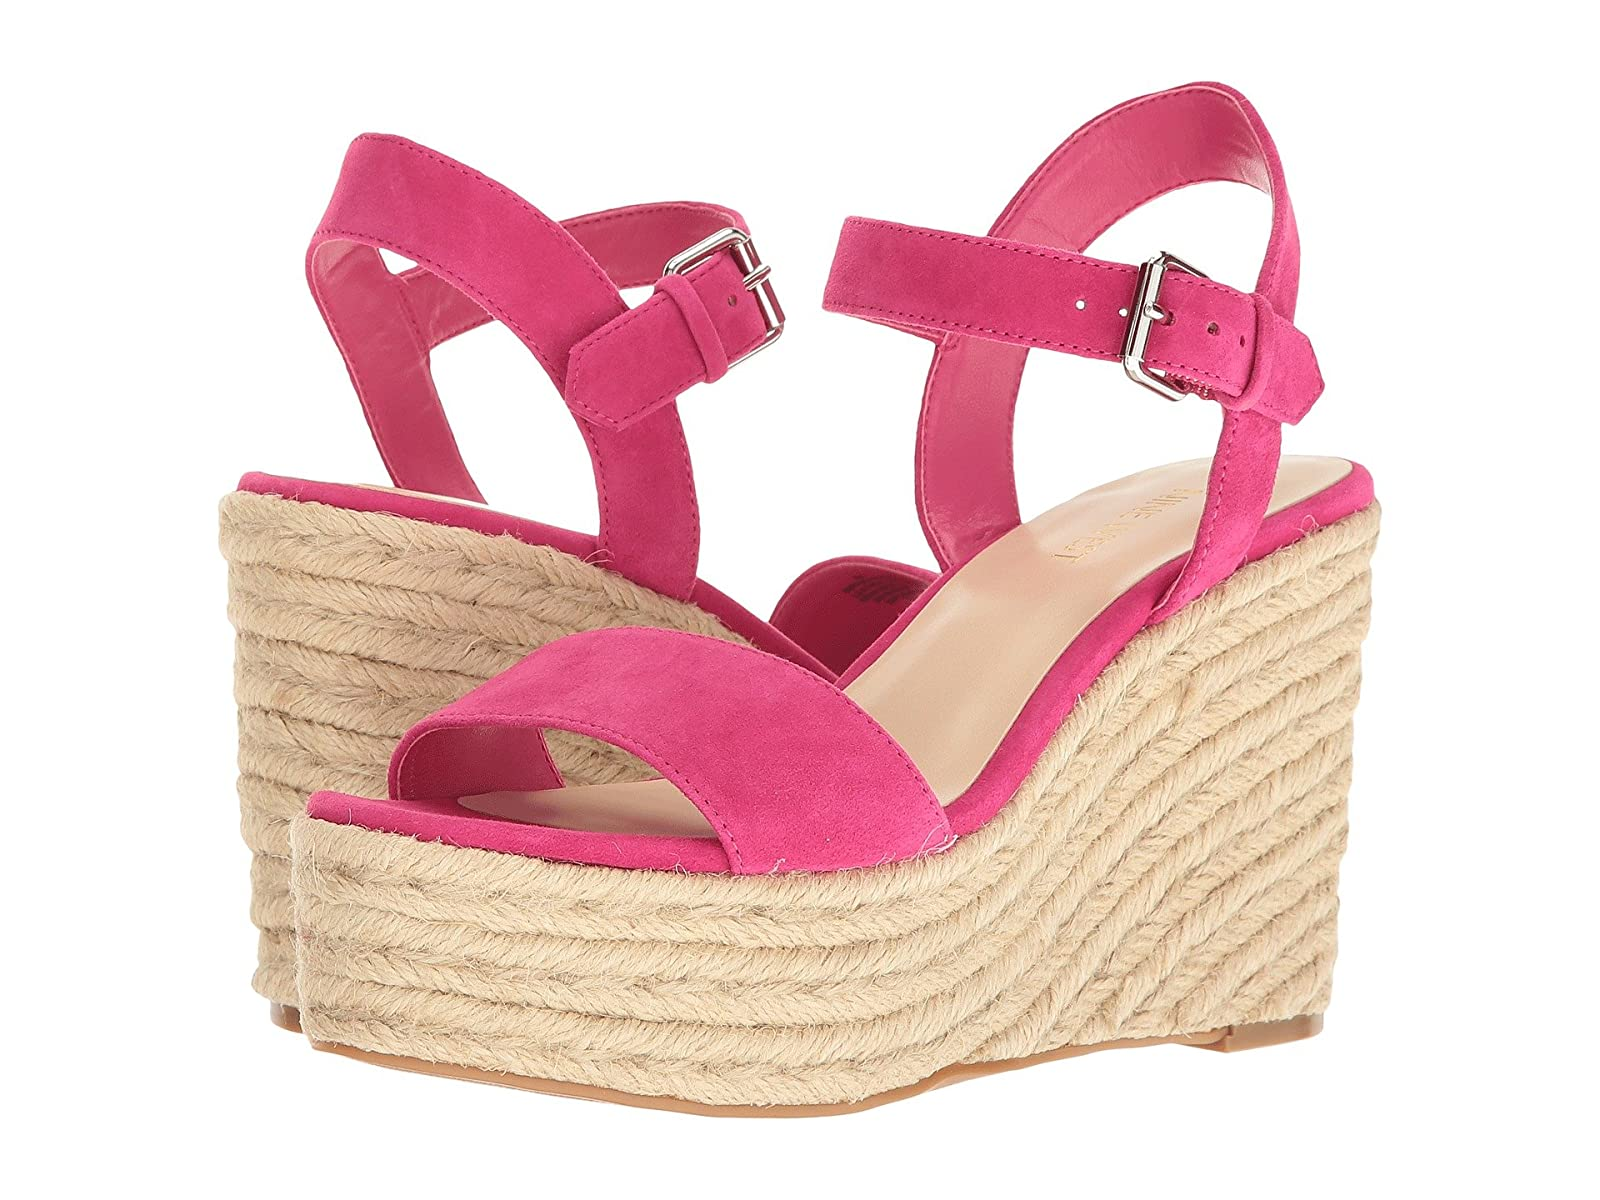 Nine West DoitrightCheap and distinctive eye-catching shoes